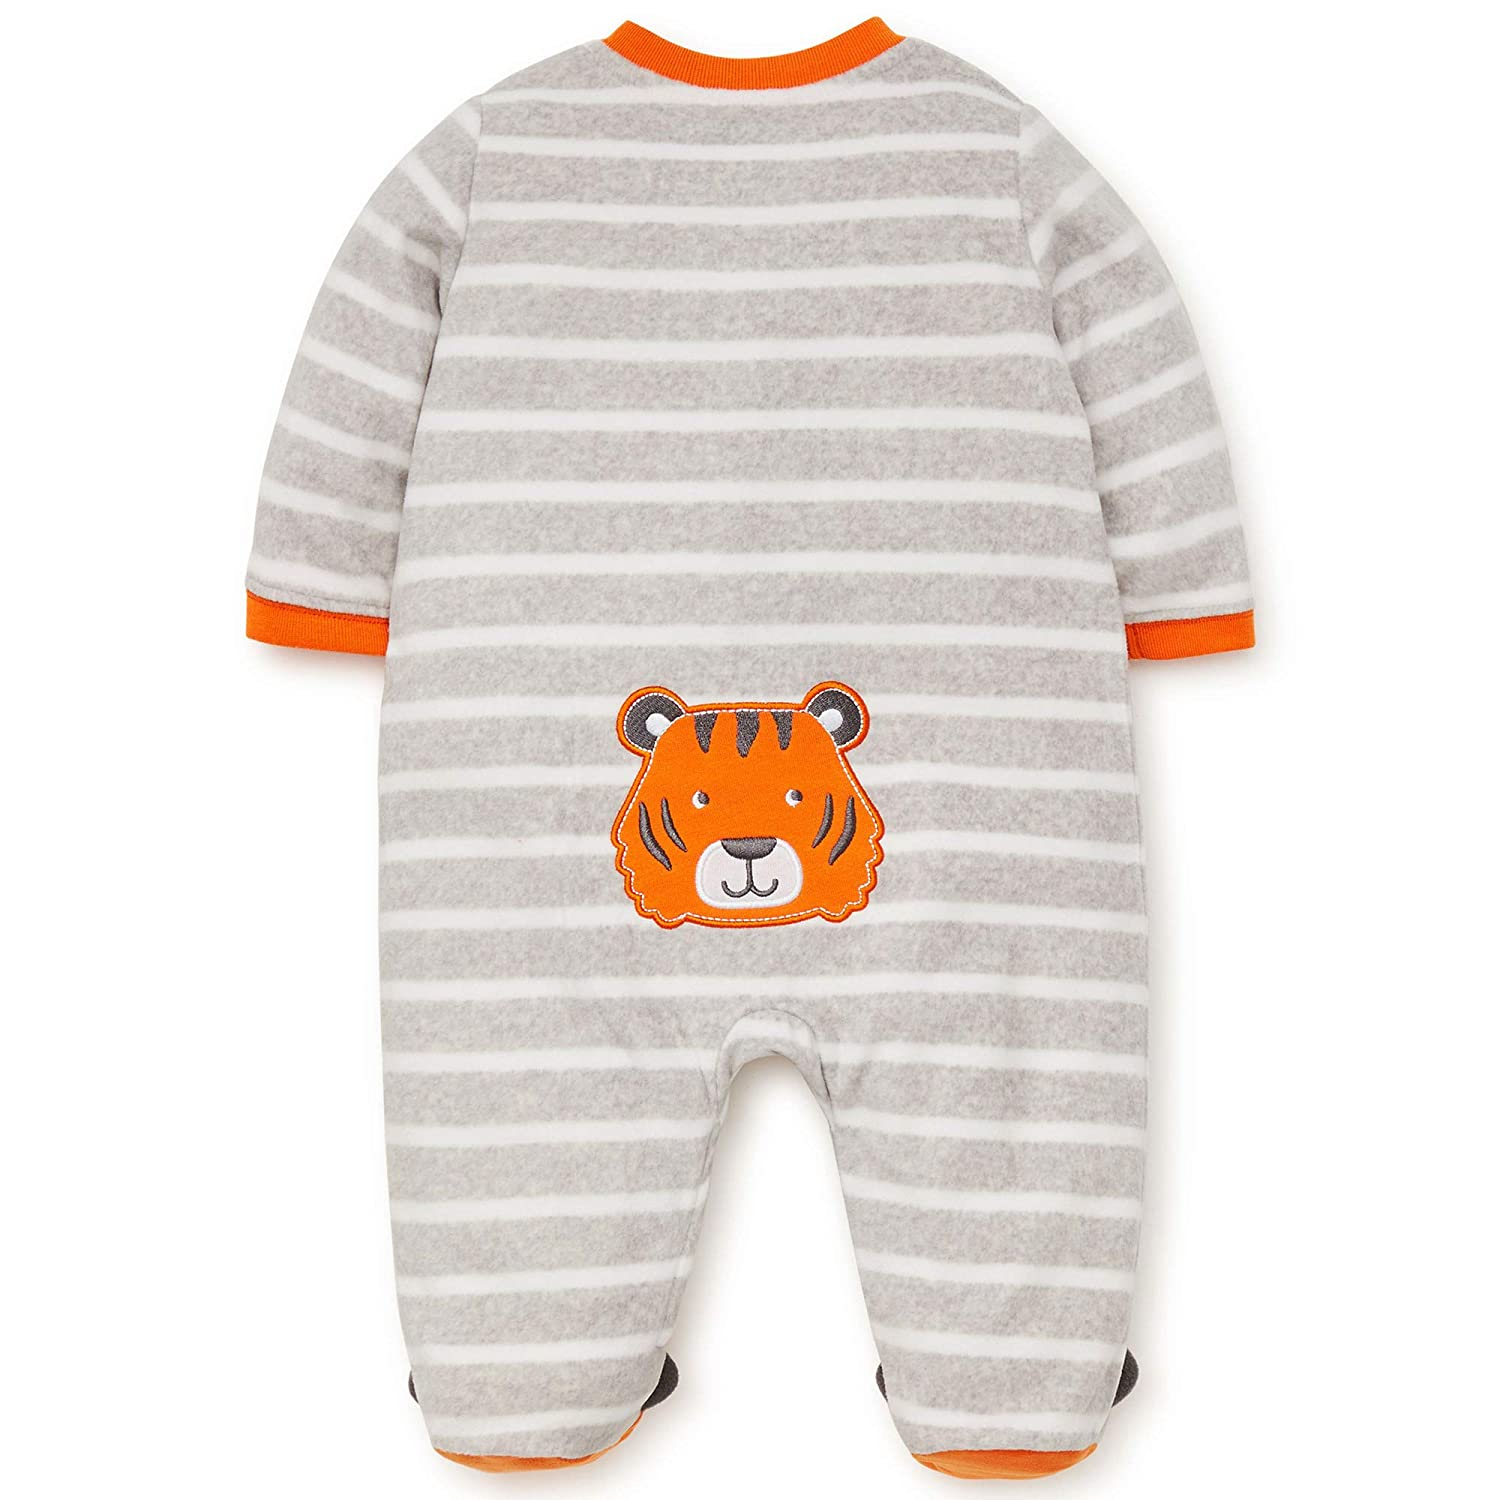 Amazon.com: Little Me Winter Fleece Baby Pajamas Footed Blanket Sleeper Footie Orange Tiger 24 Month: Baby